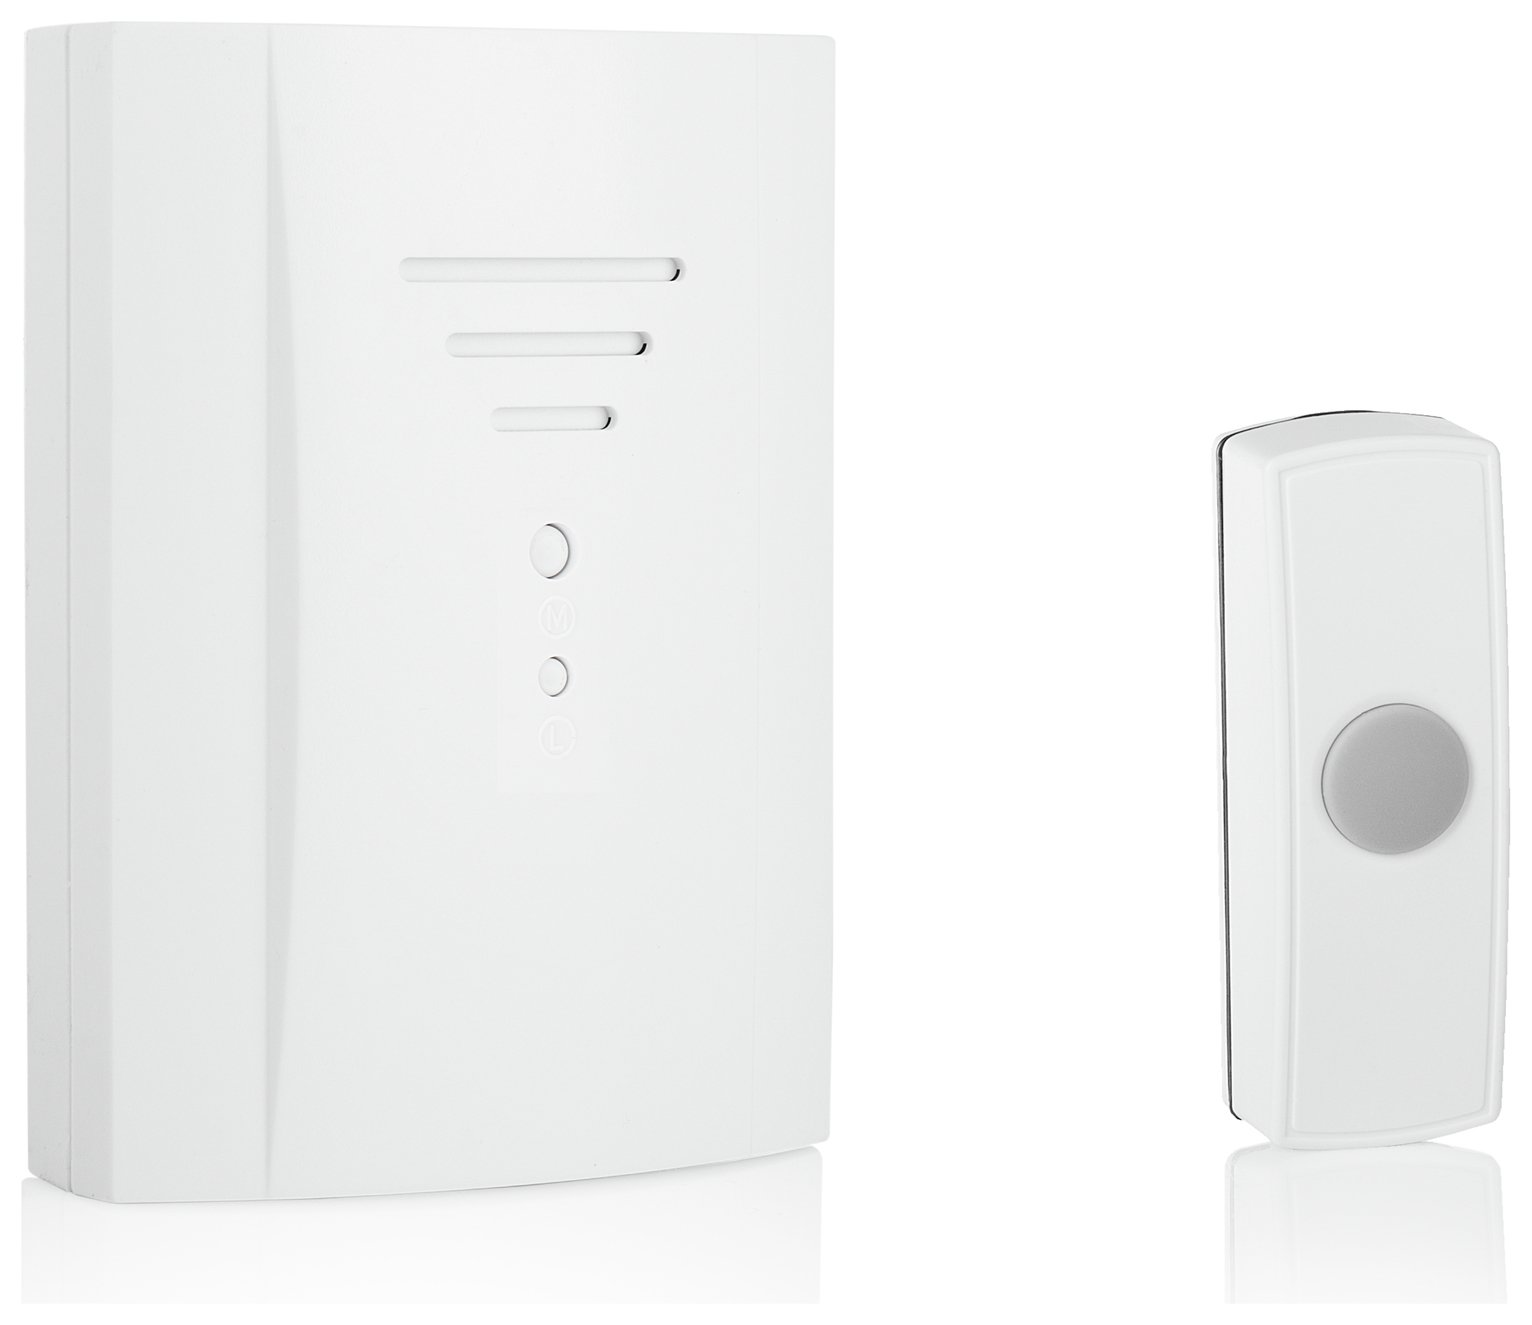 Image of Byron B305 50m Wireless Doorbell with Plug In Chime